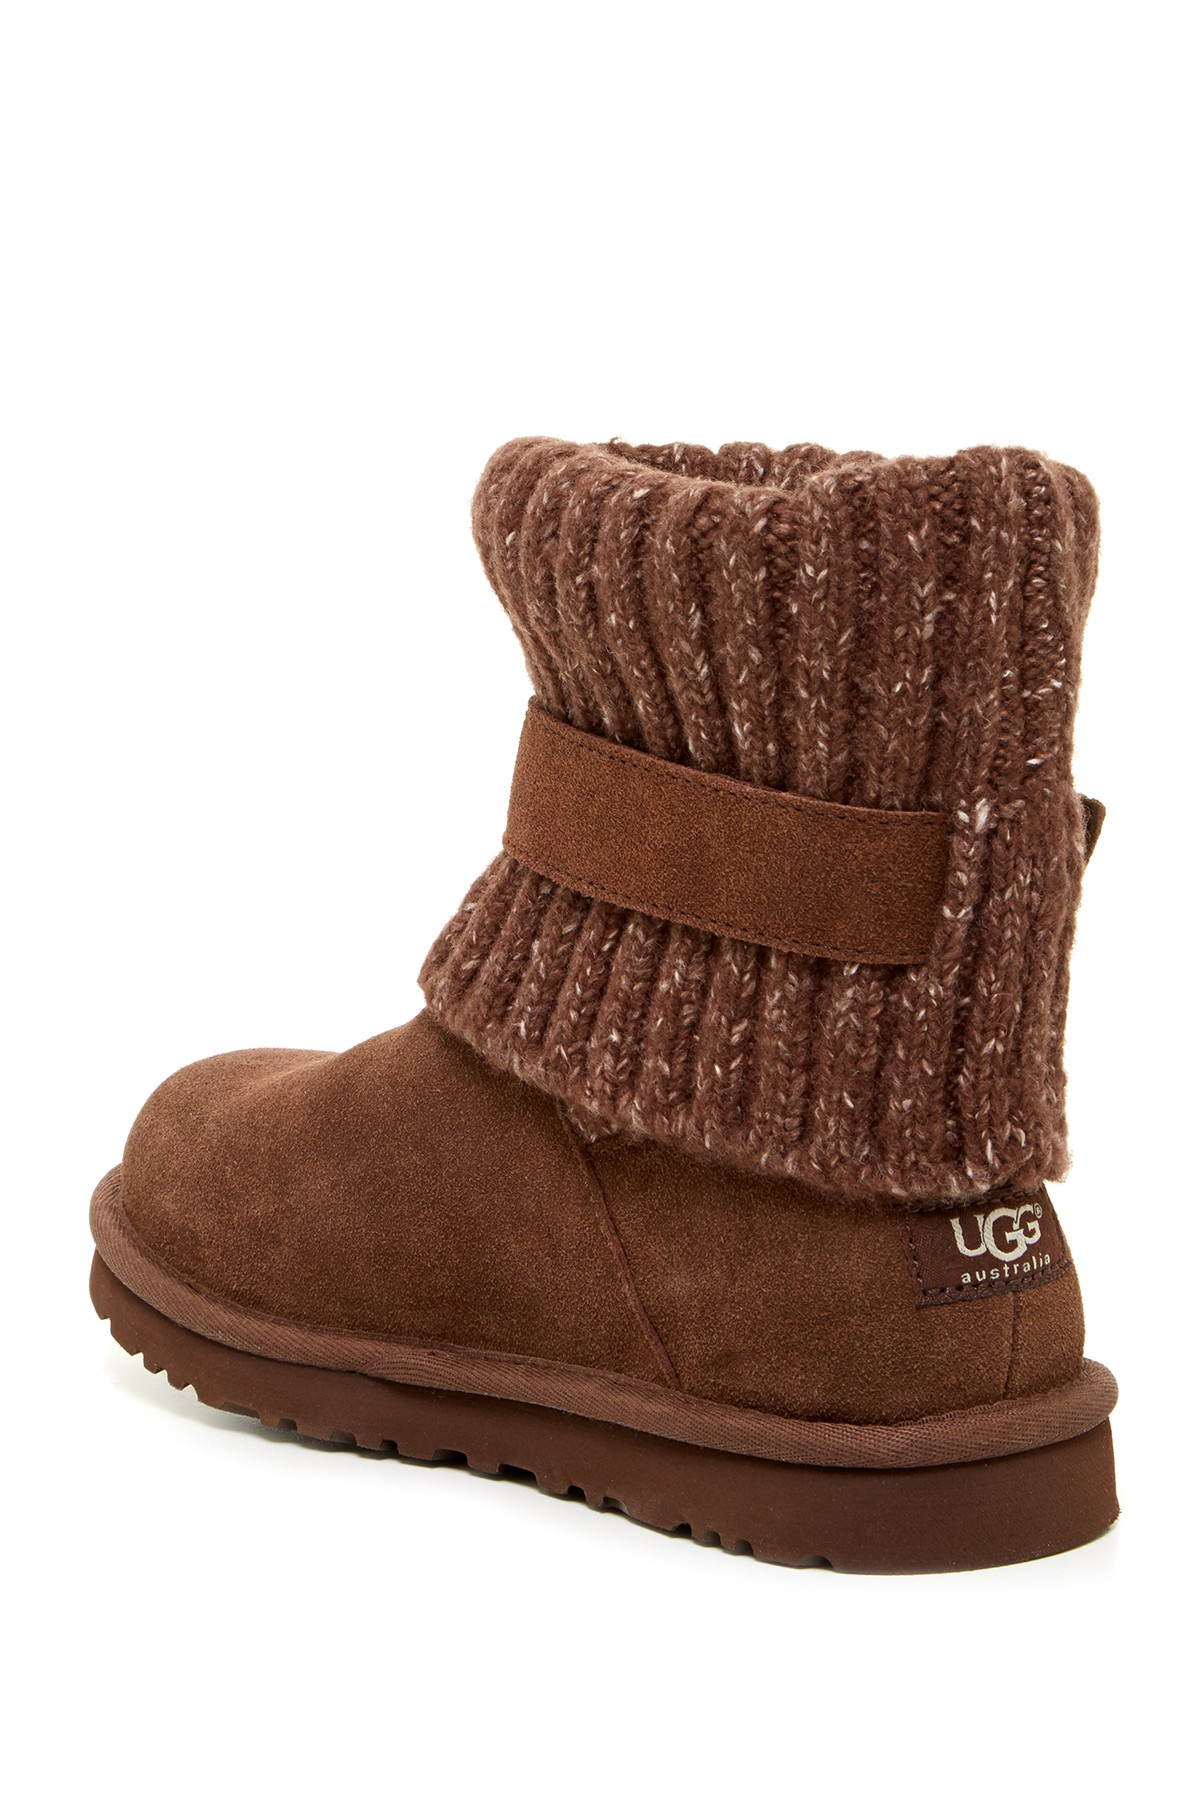 6d1d5ad6d78 Lyst - UGG Cambridge Knit Uggpure Lined Boot in Brown